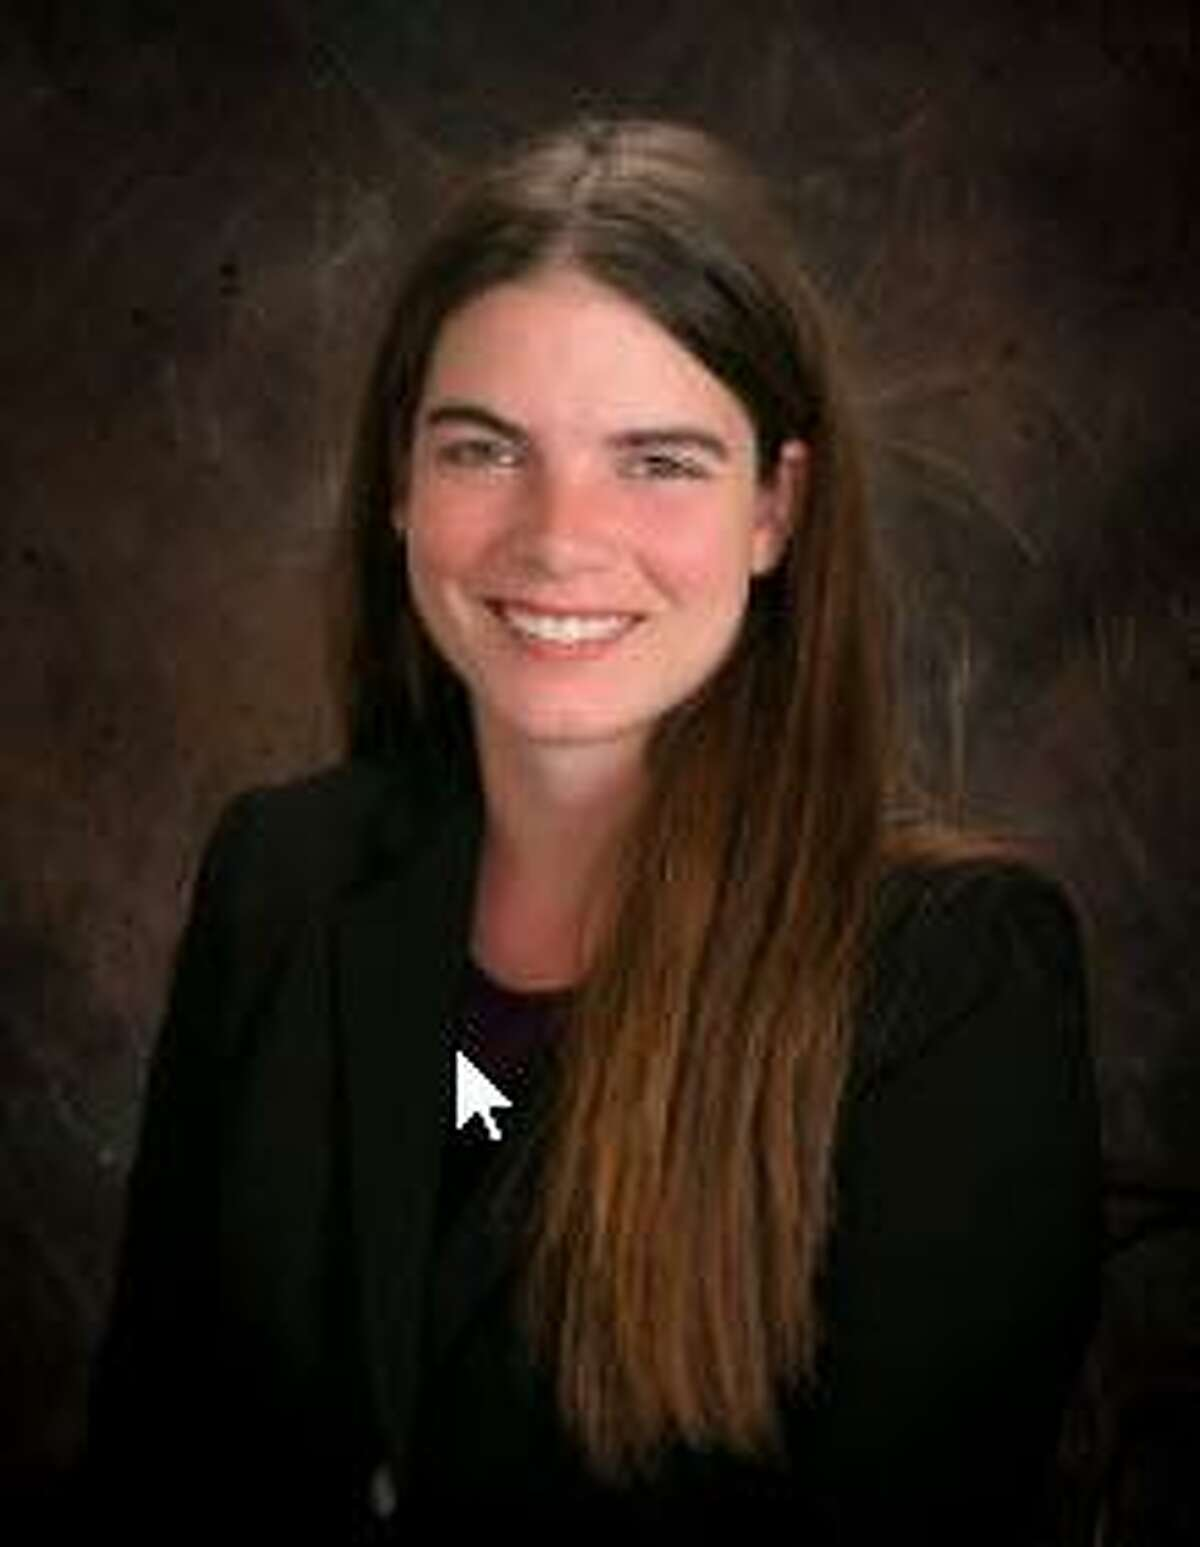 Sarah Laningham is a Republican candidate for District 28 in the Texas House.